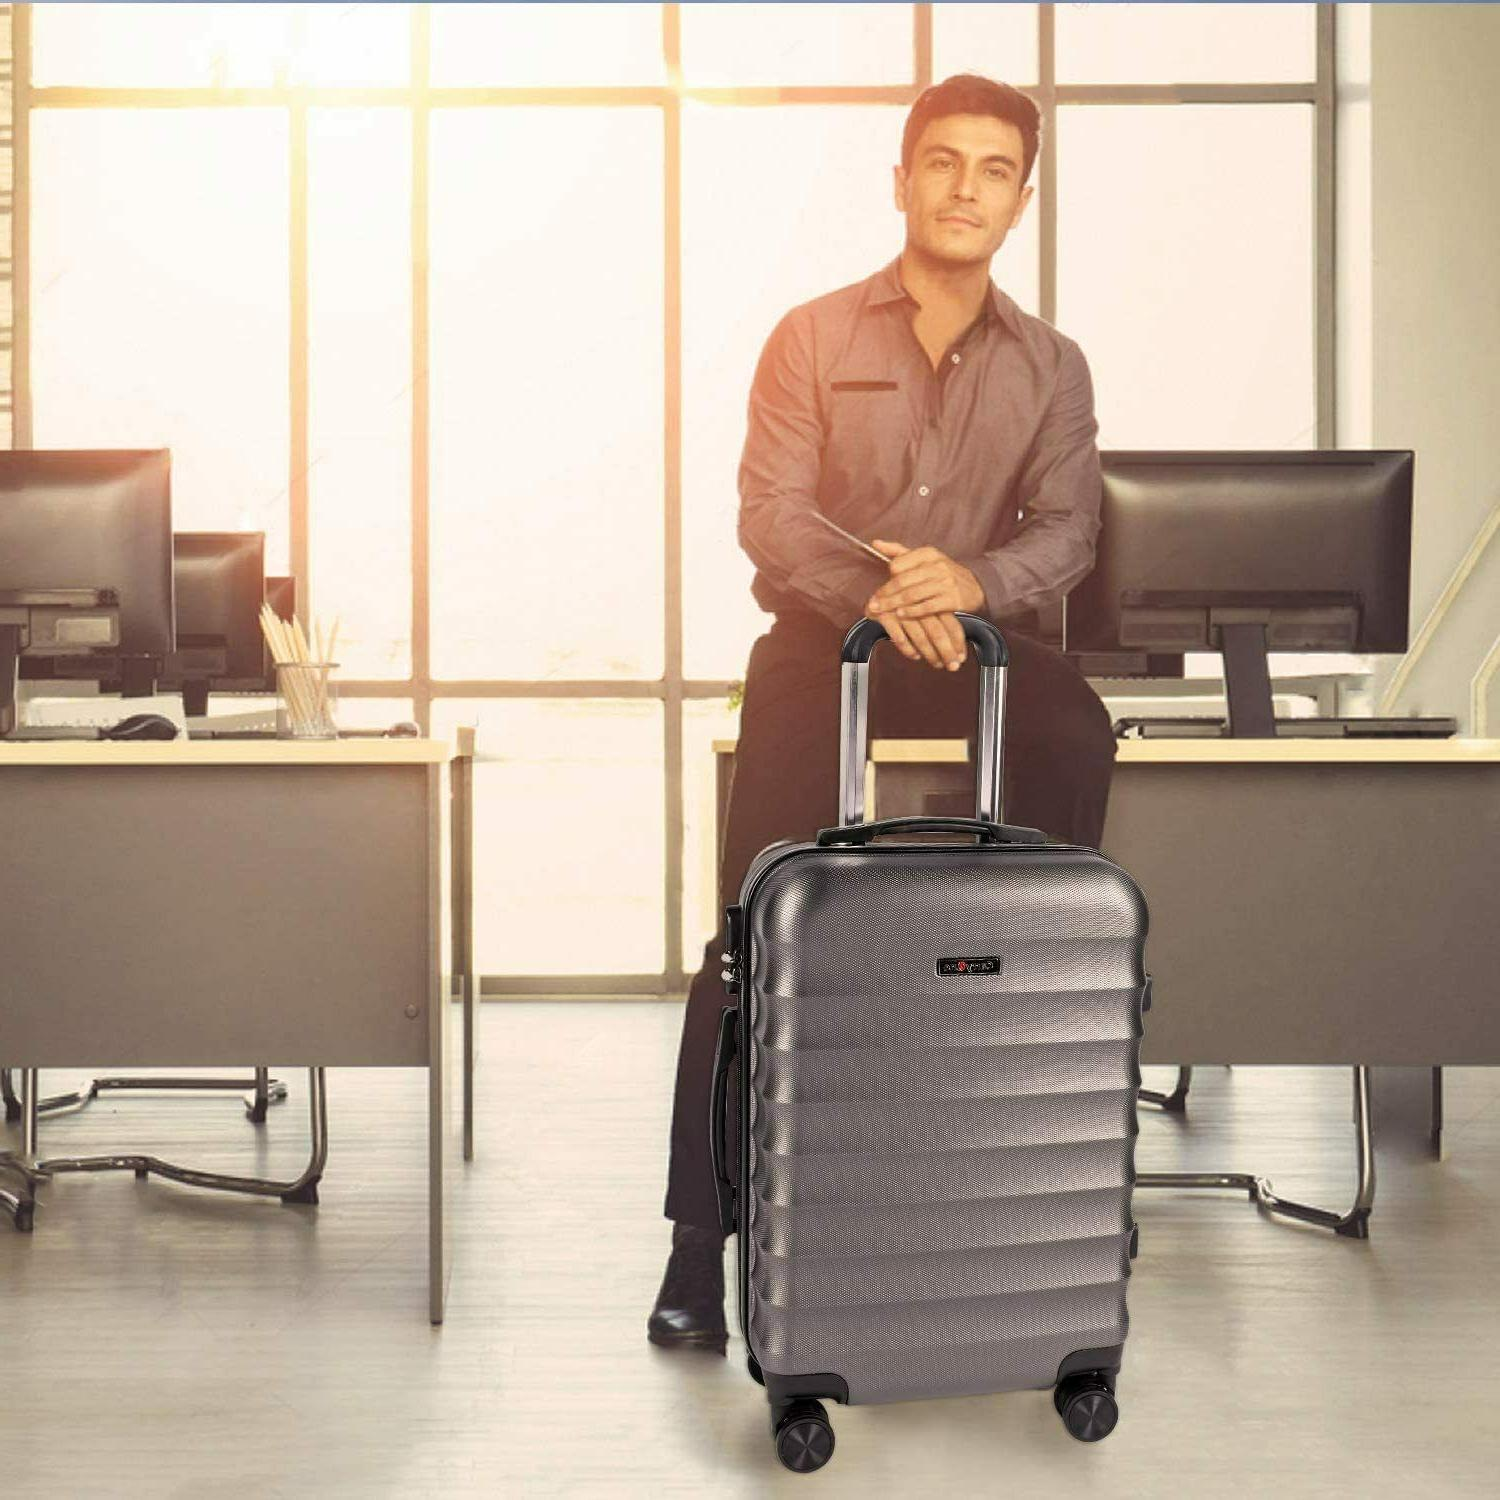 CarryOne Hardside Luggage, Lightweight Suitcase with Spinner Wheels,